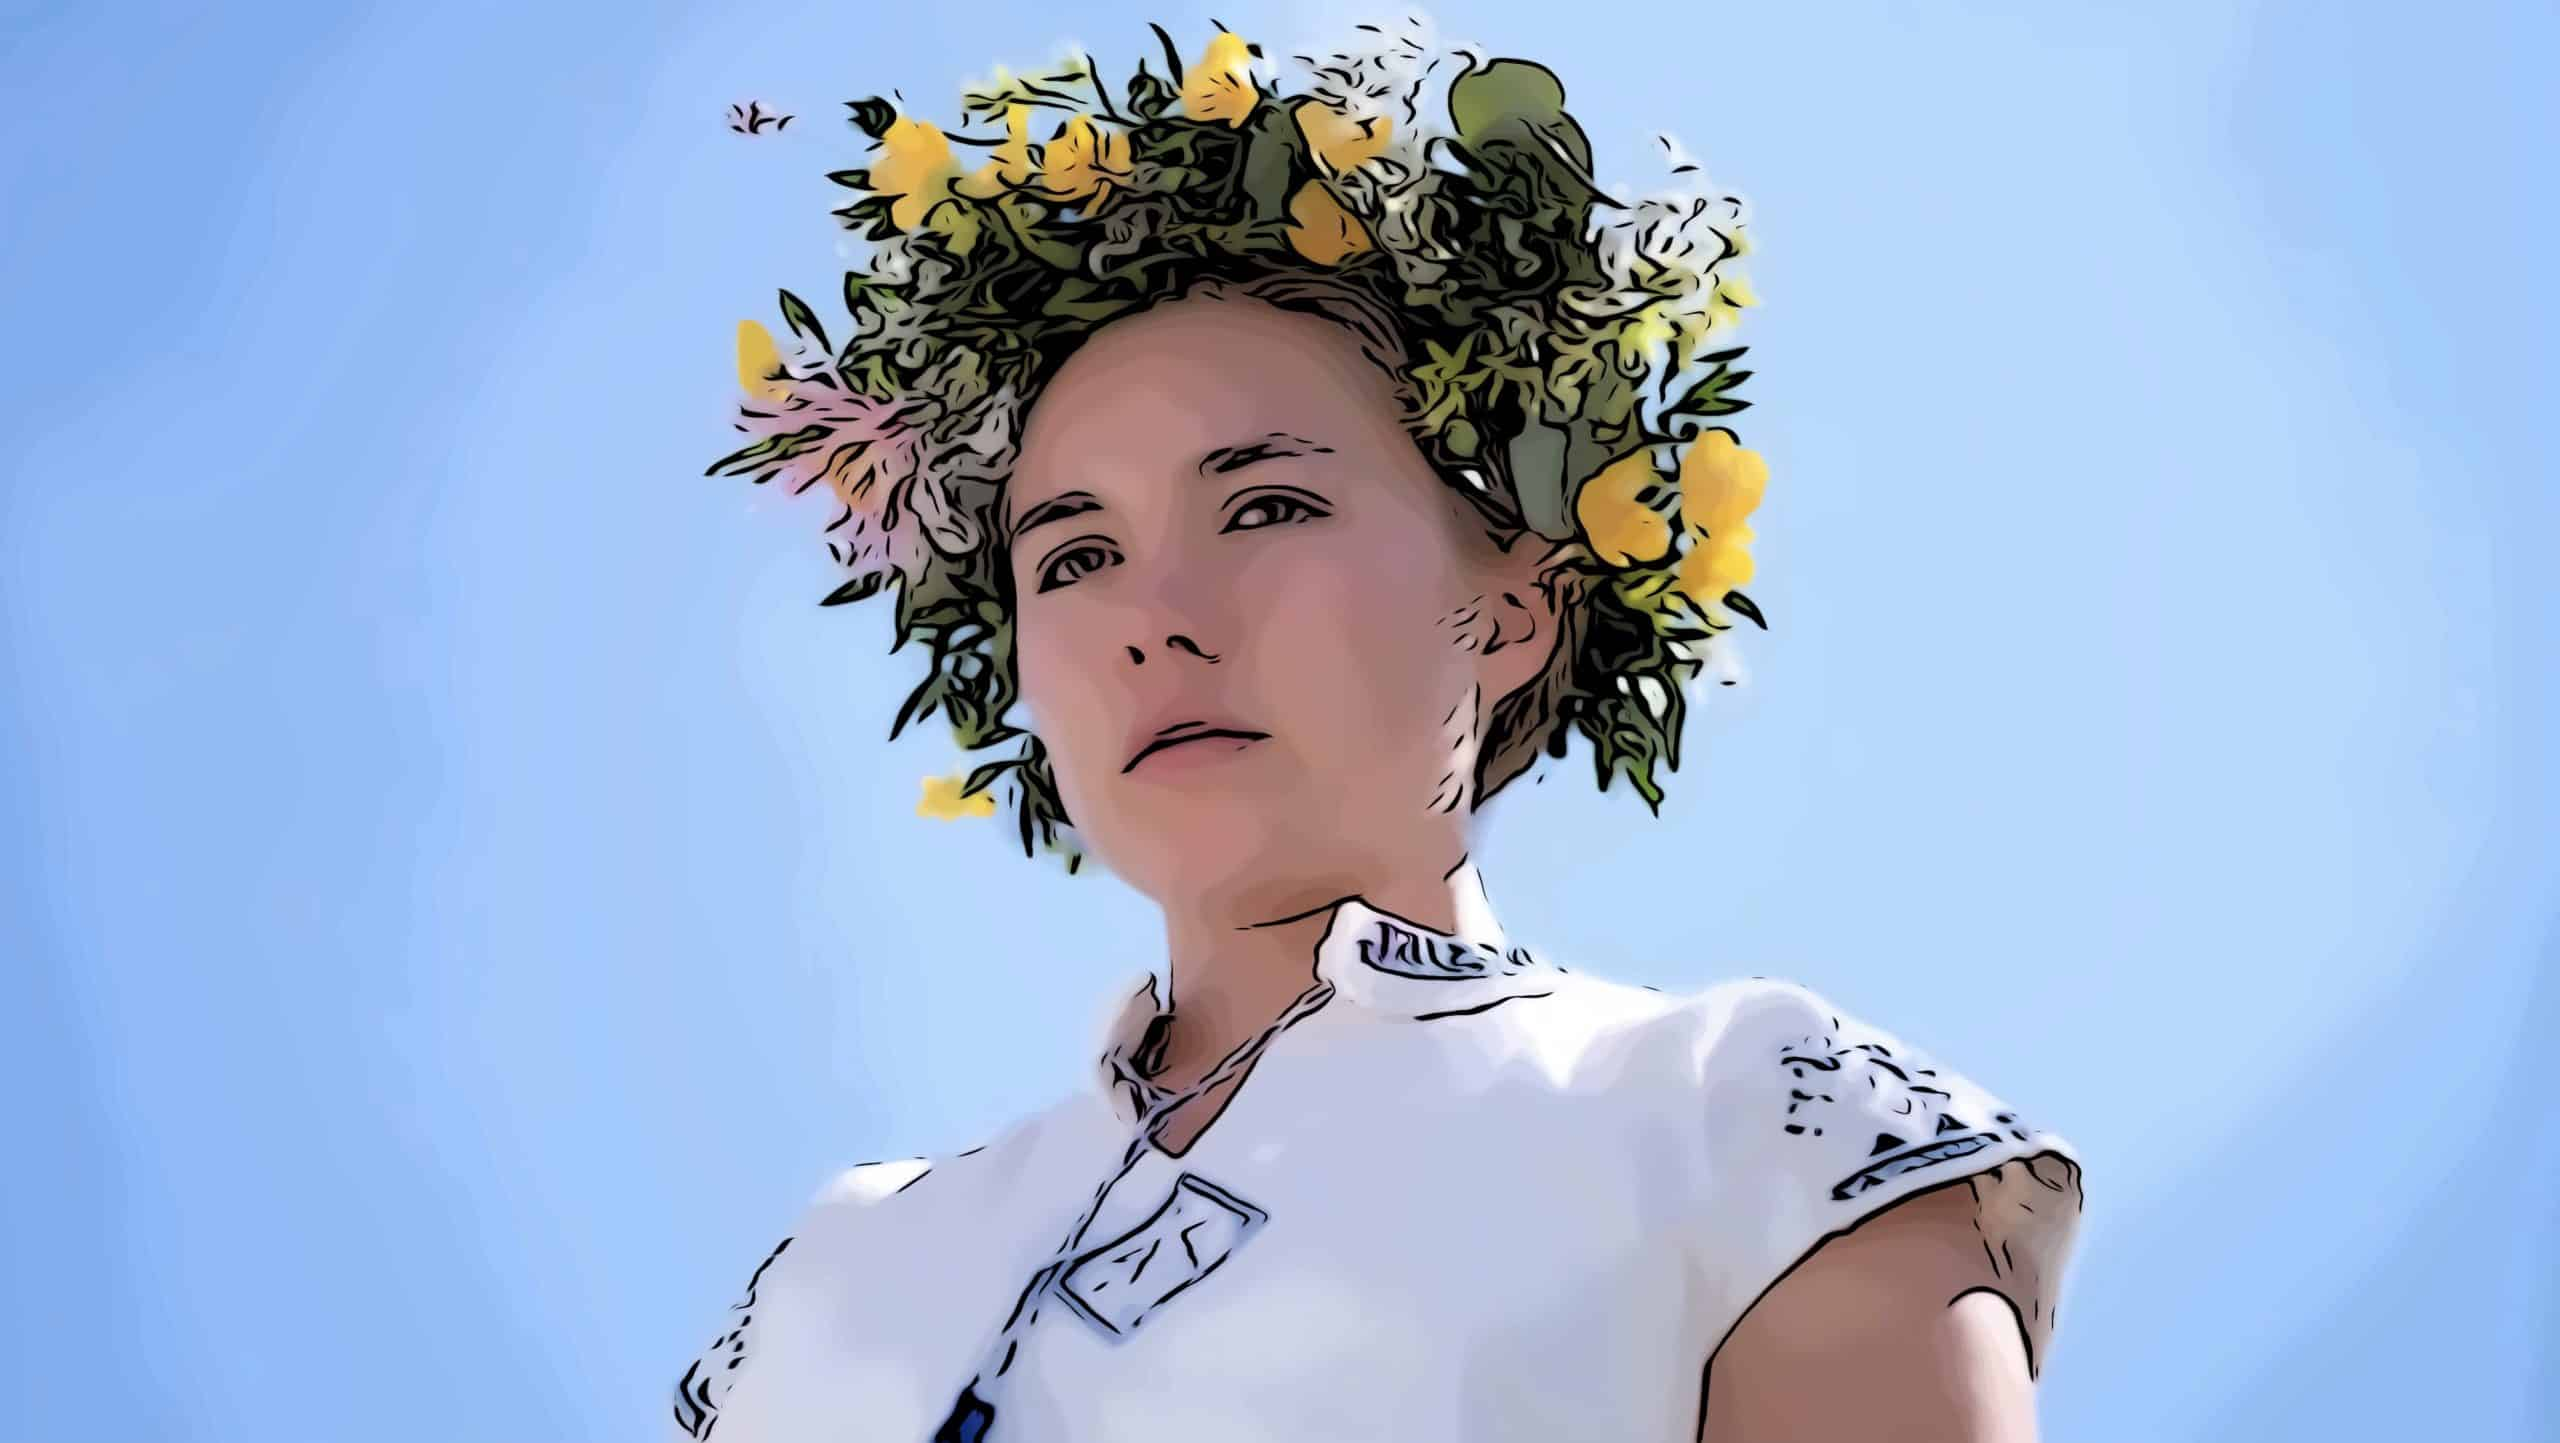 Scene from Midsommar for movies like Get Out post.